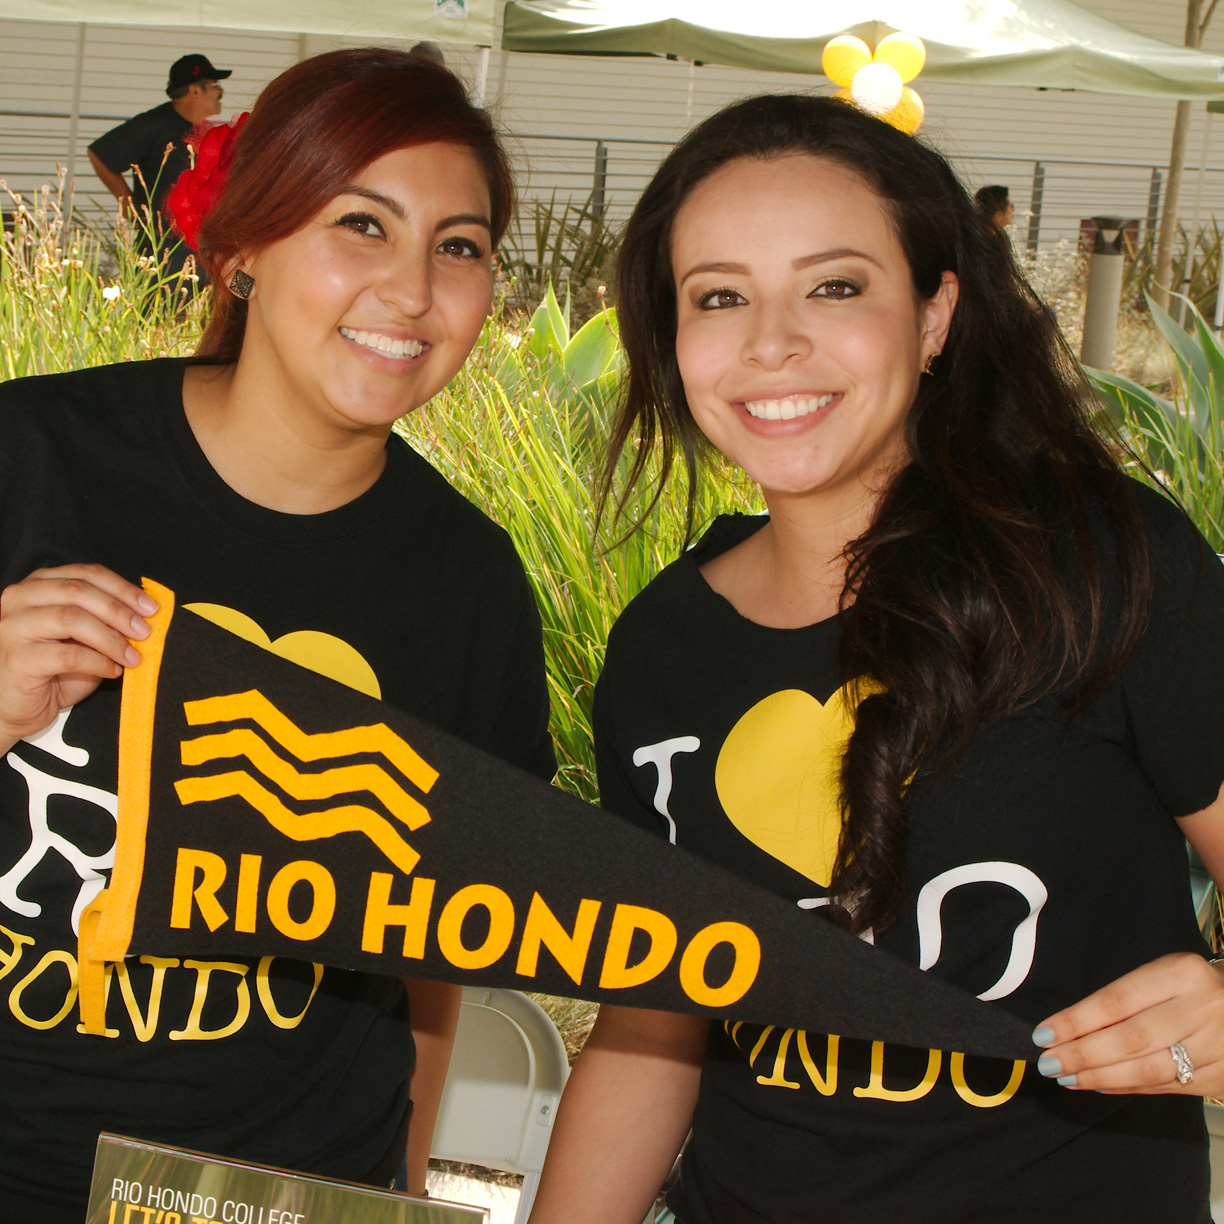 rio hondo hispanic singles Meet single christian women in rio hondo are you ready to meet someone to start a meaningful relationship with hispanic single women in rio hondo.